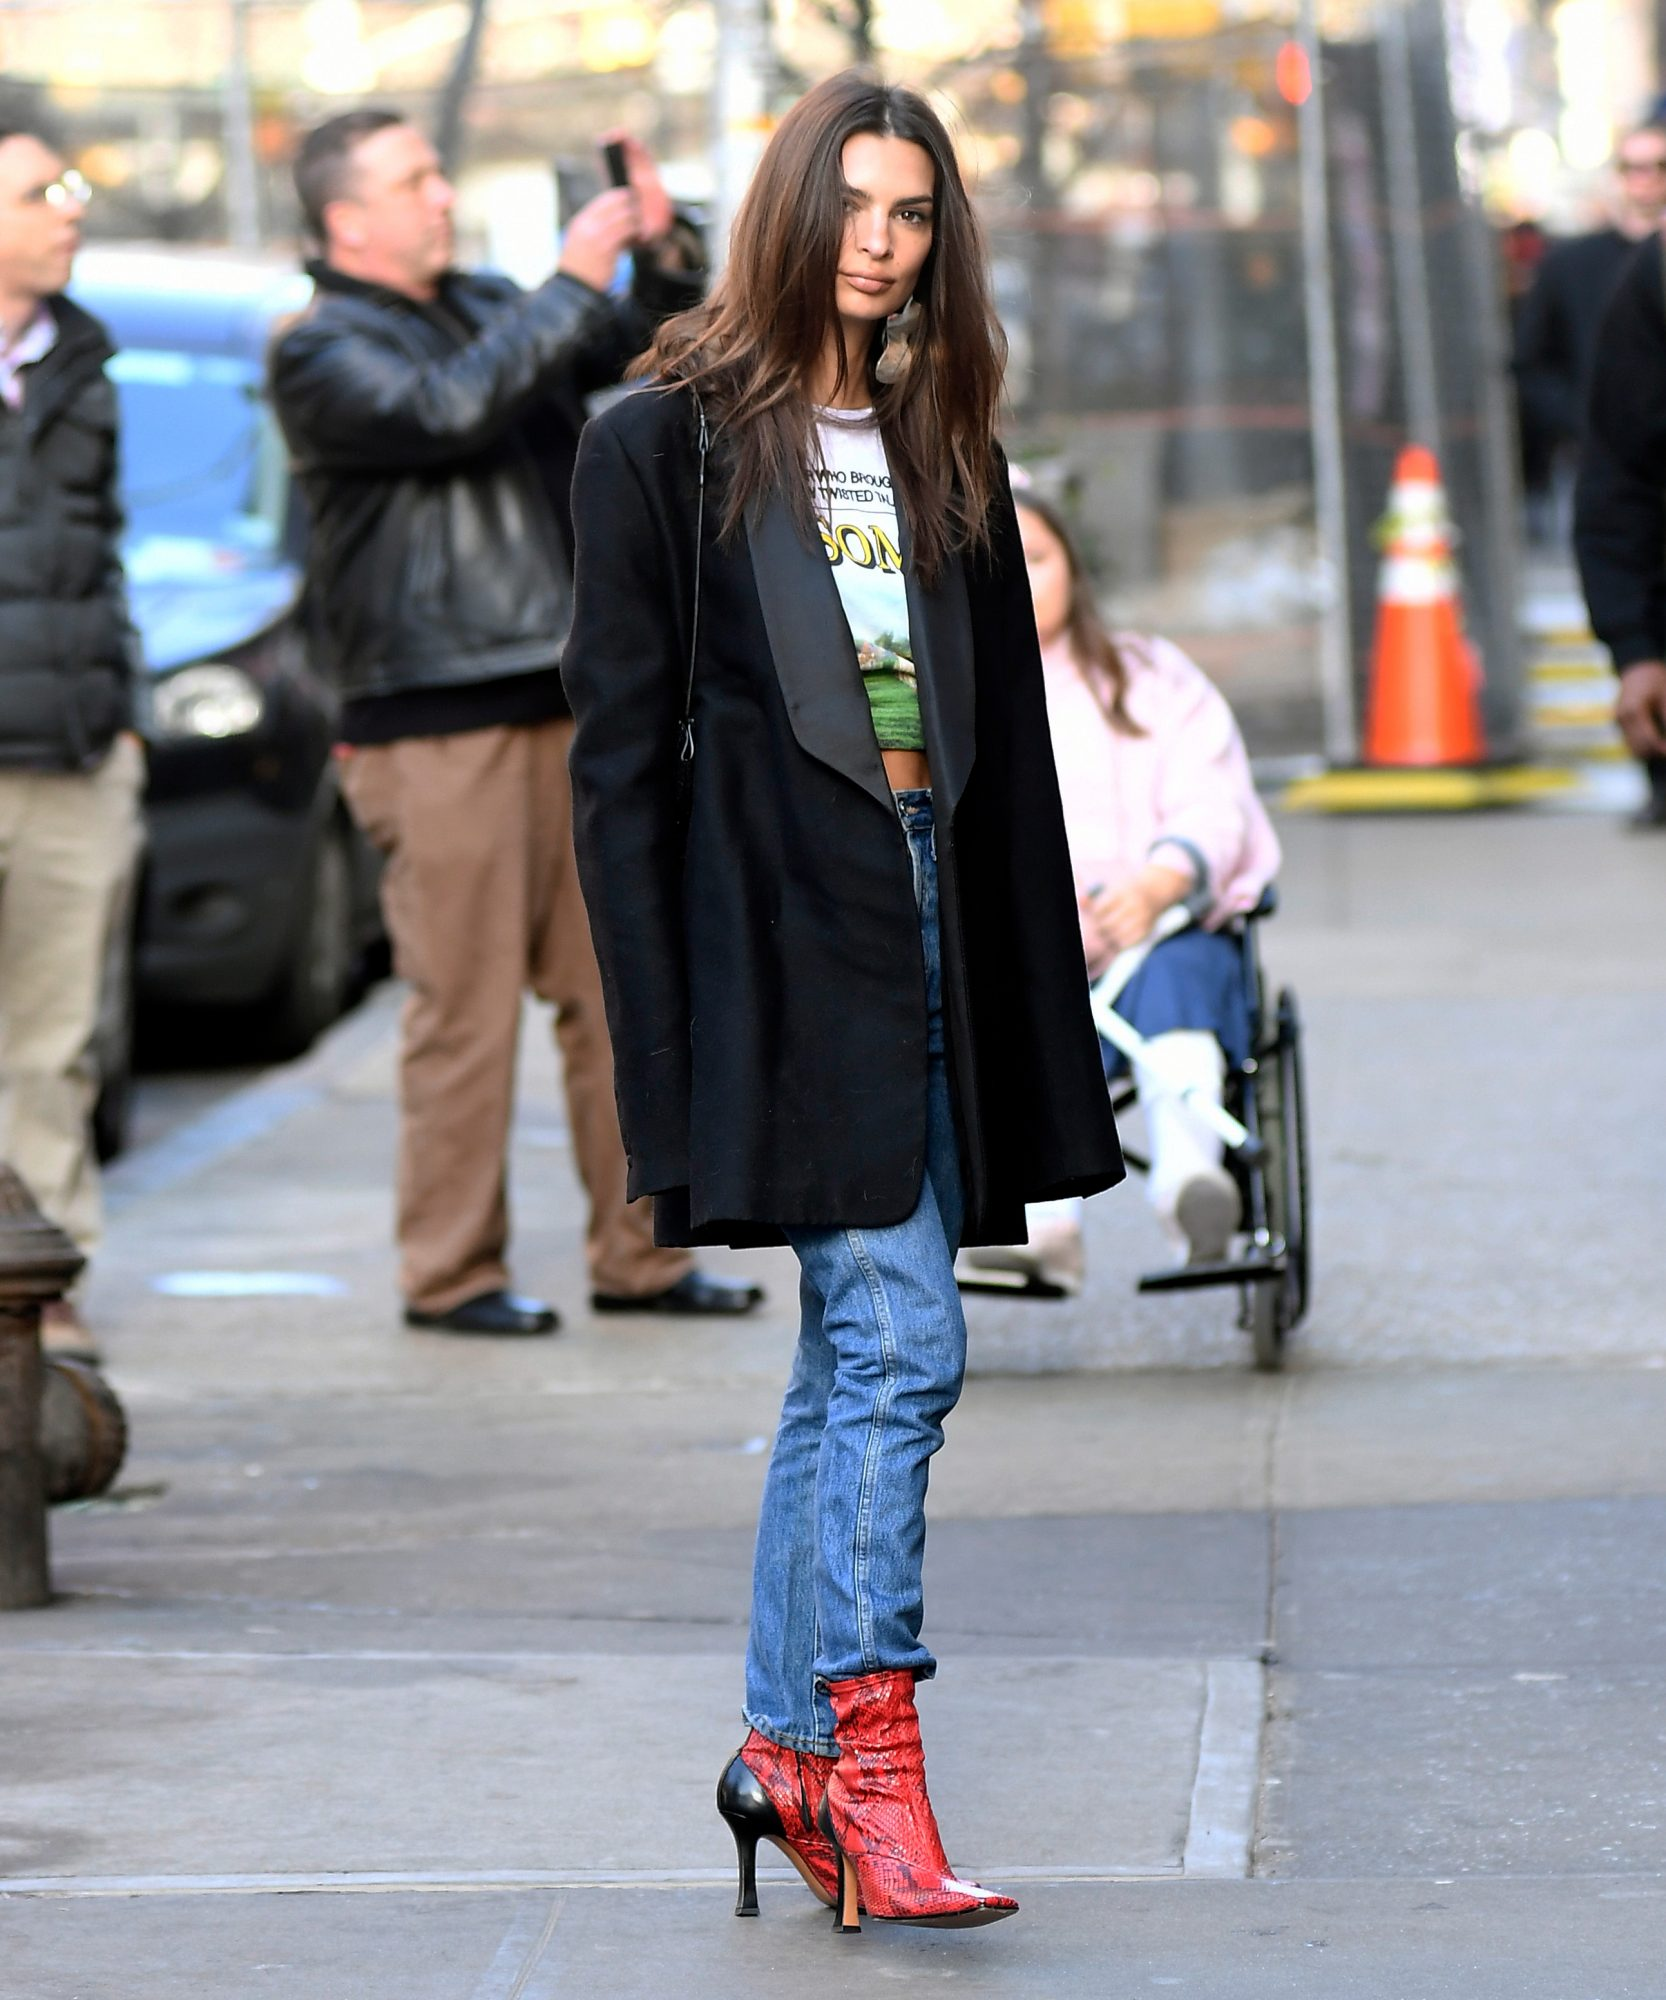 EmRata and Courtney Cox both love this boot trend!